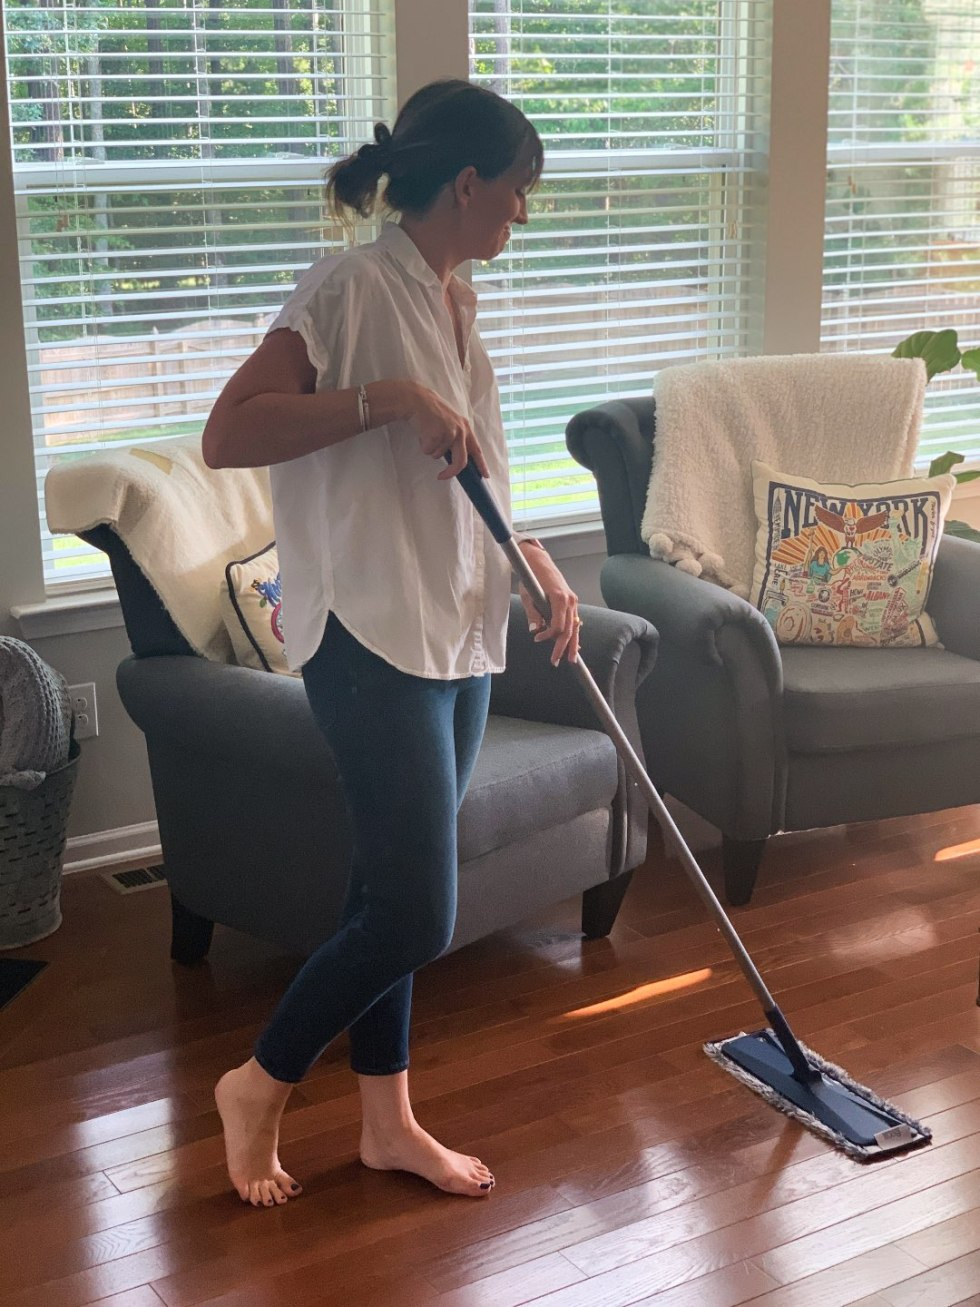 Keeping Our Floors Clean with Bona Essentials - I'm Fixin' To - @mbg0112 | Keeping Our Floors Clean with Bona Essentials by popular lifestyle blog, I'm Fixin' To: image of a woman moping her floor with a Bona Essentials mop.